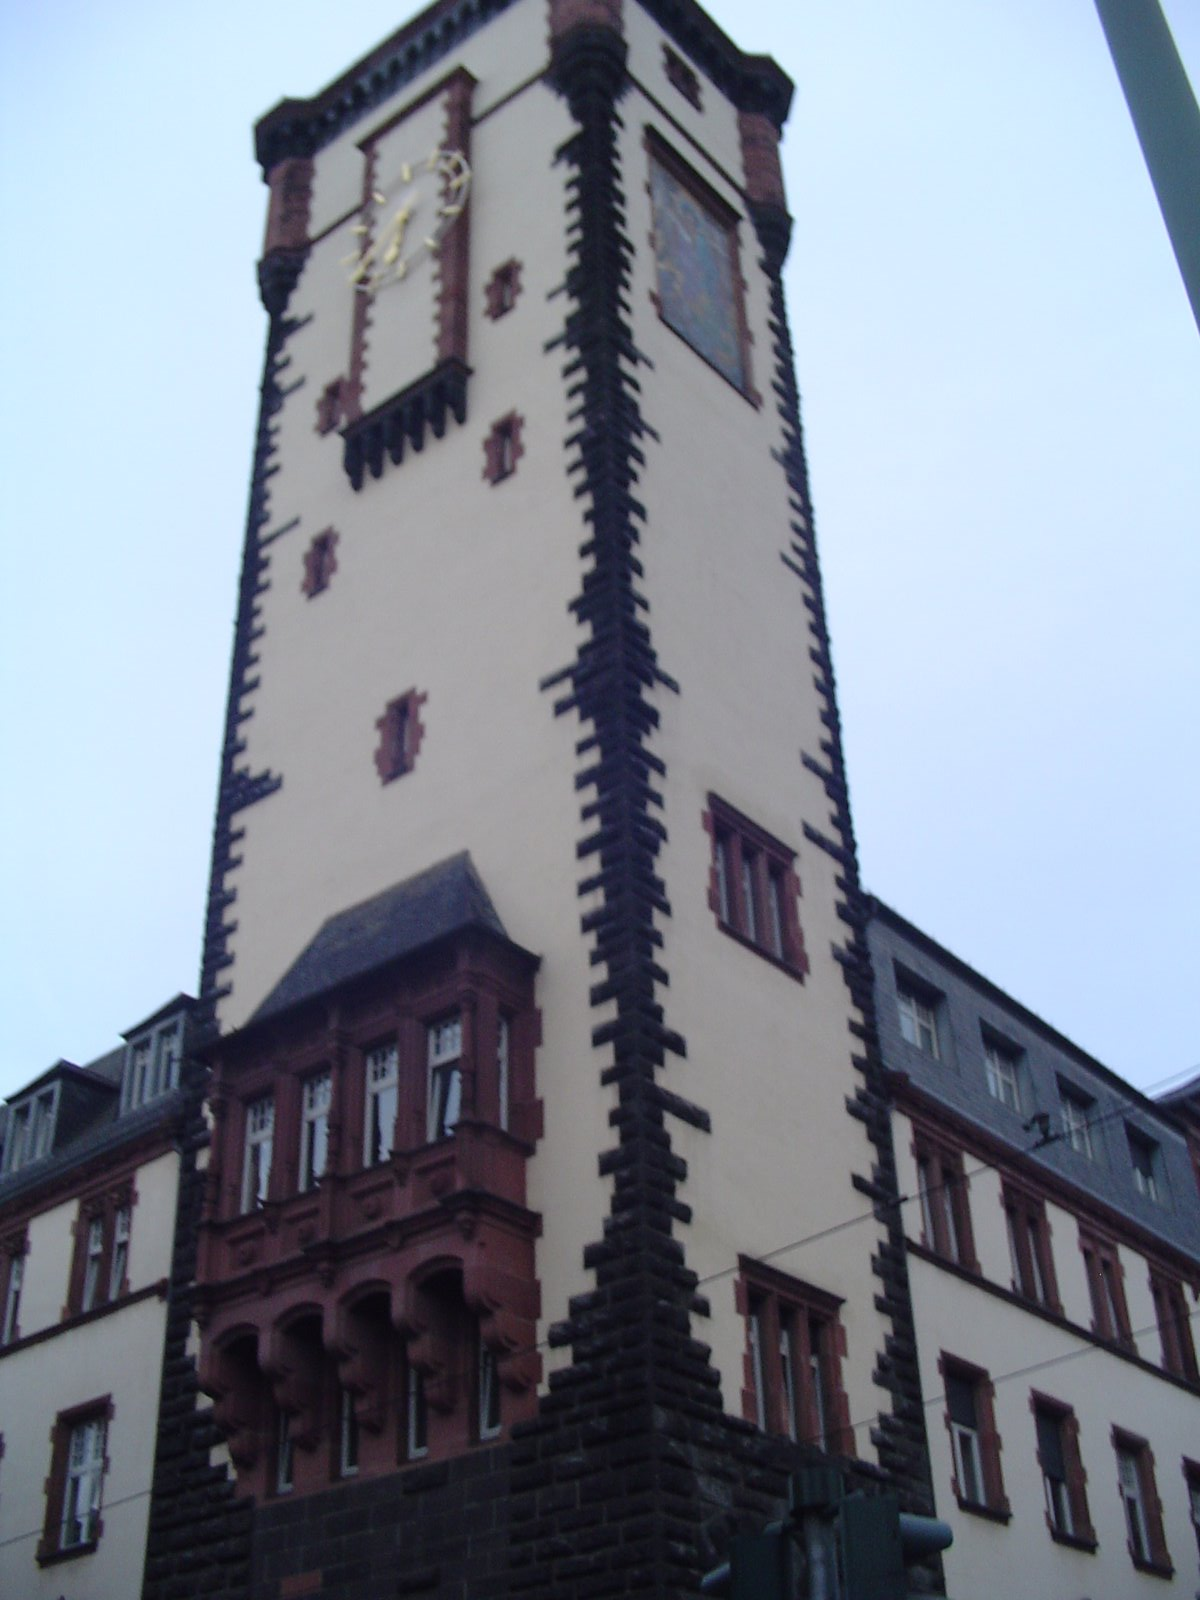 Frankfurt Architecture, Germany, Clock Tower